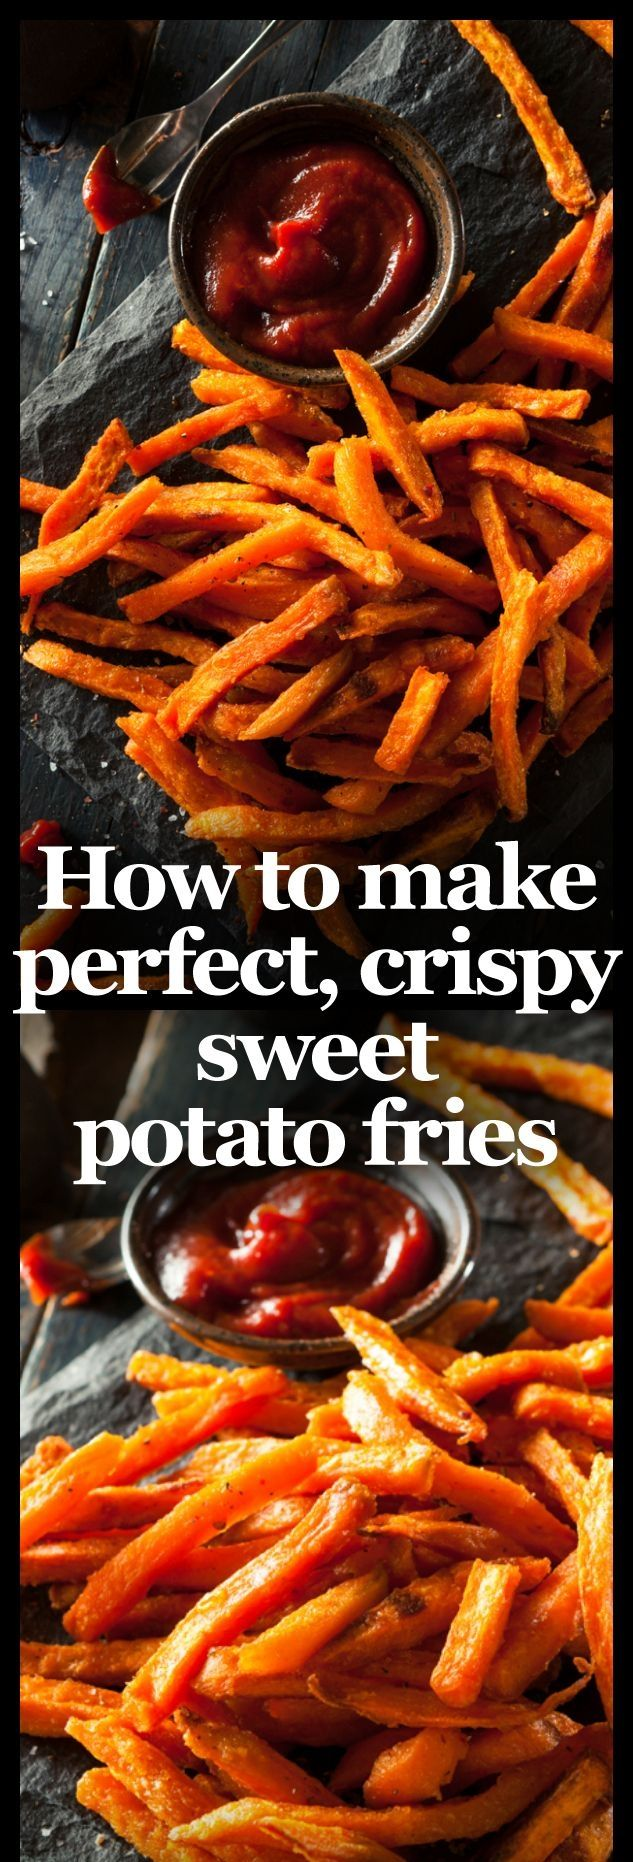 There's no denying that sweet potato fries are one of the tastiest ways to eat! Here's the perfect recipe to get the best results!